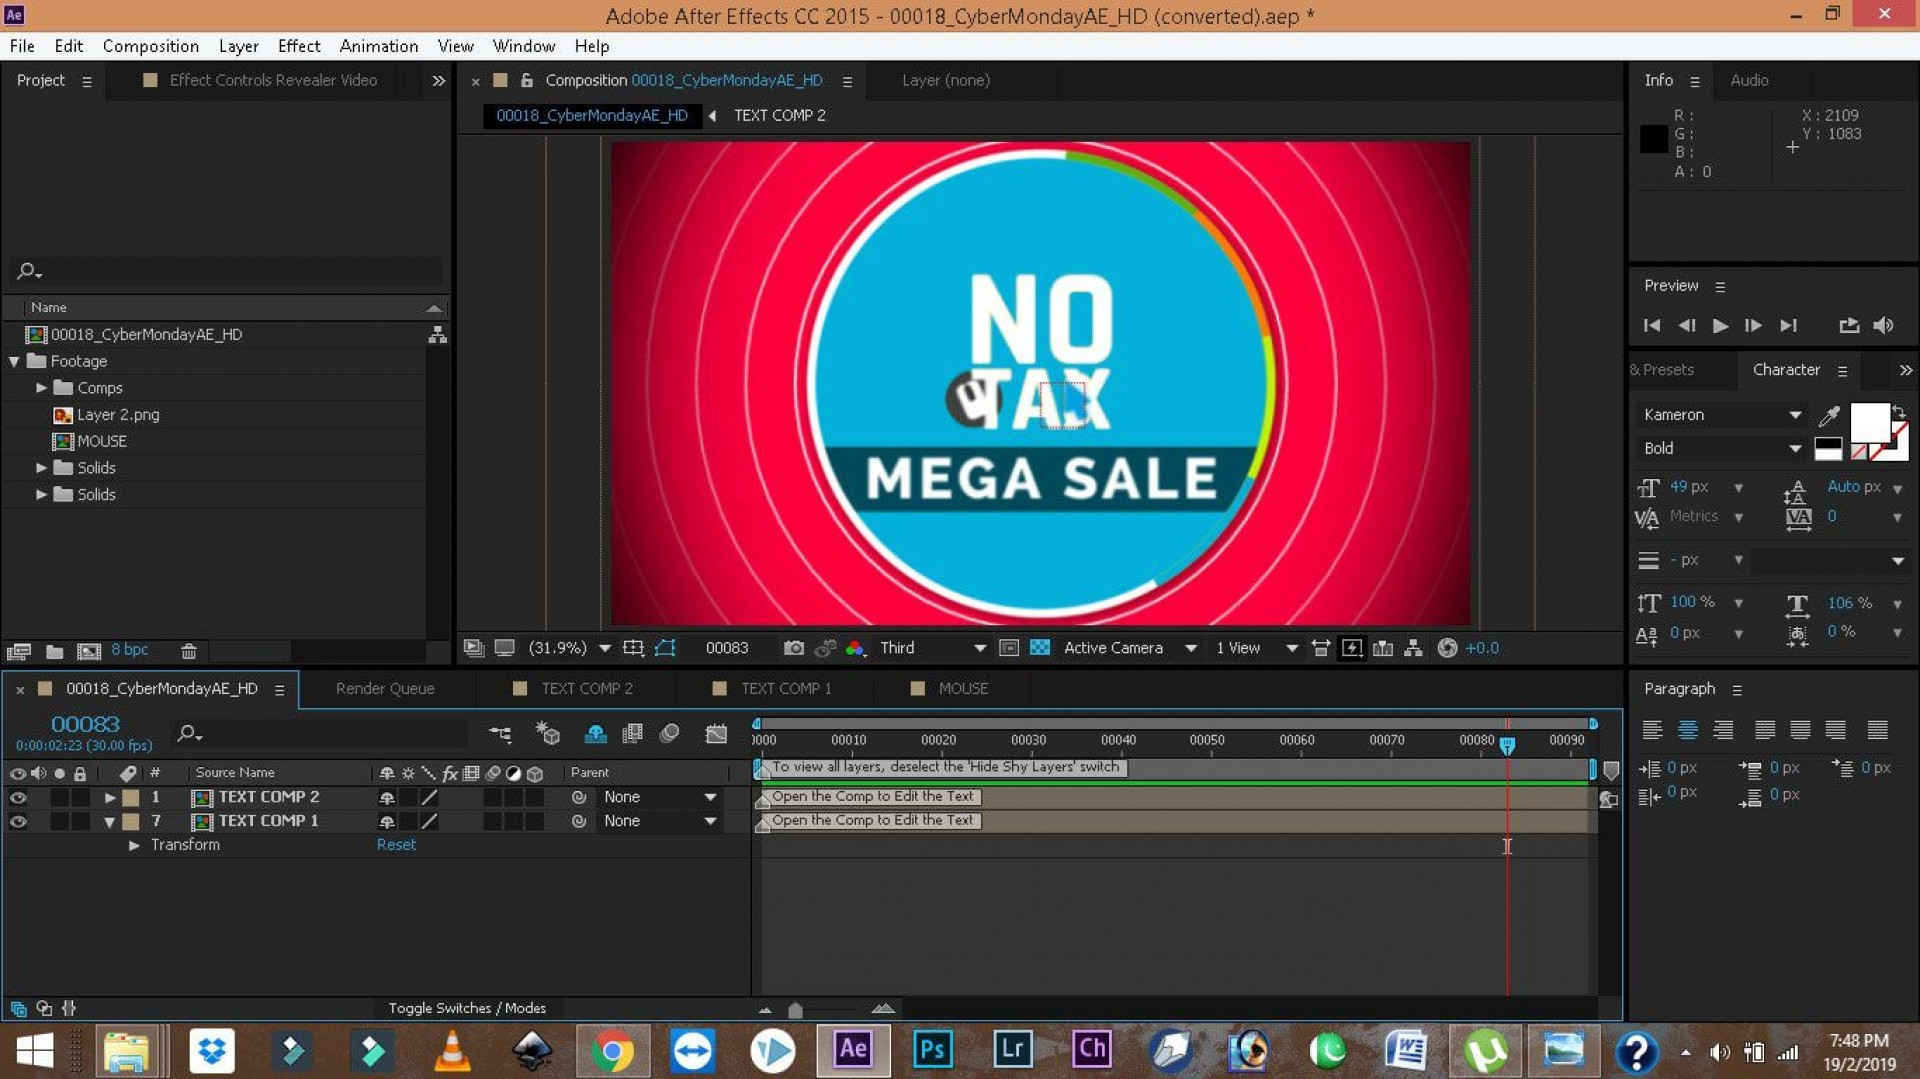 006 Fascinating Videohive After Effect Template High Def  Templates Envato Map Kit - Free Download1920